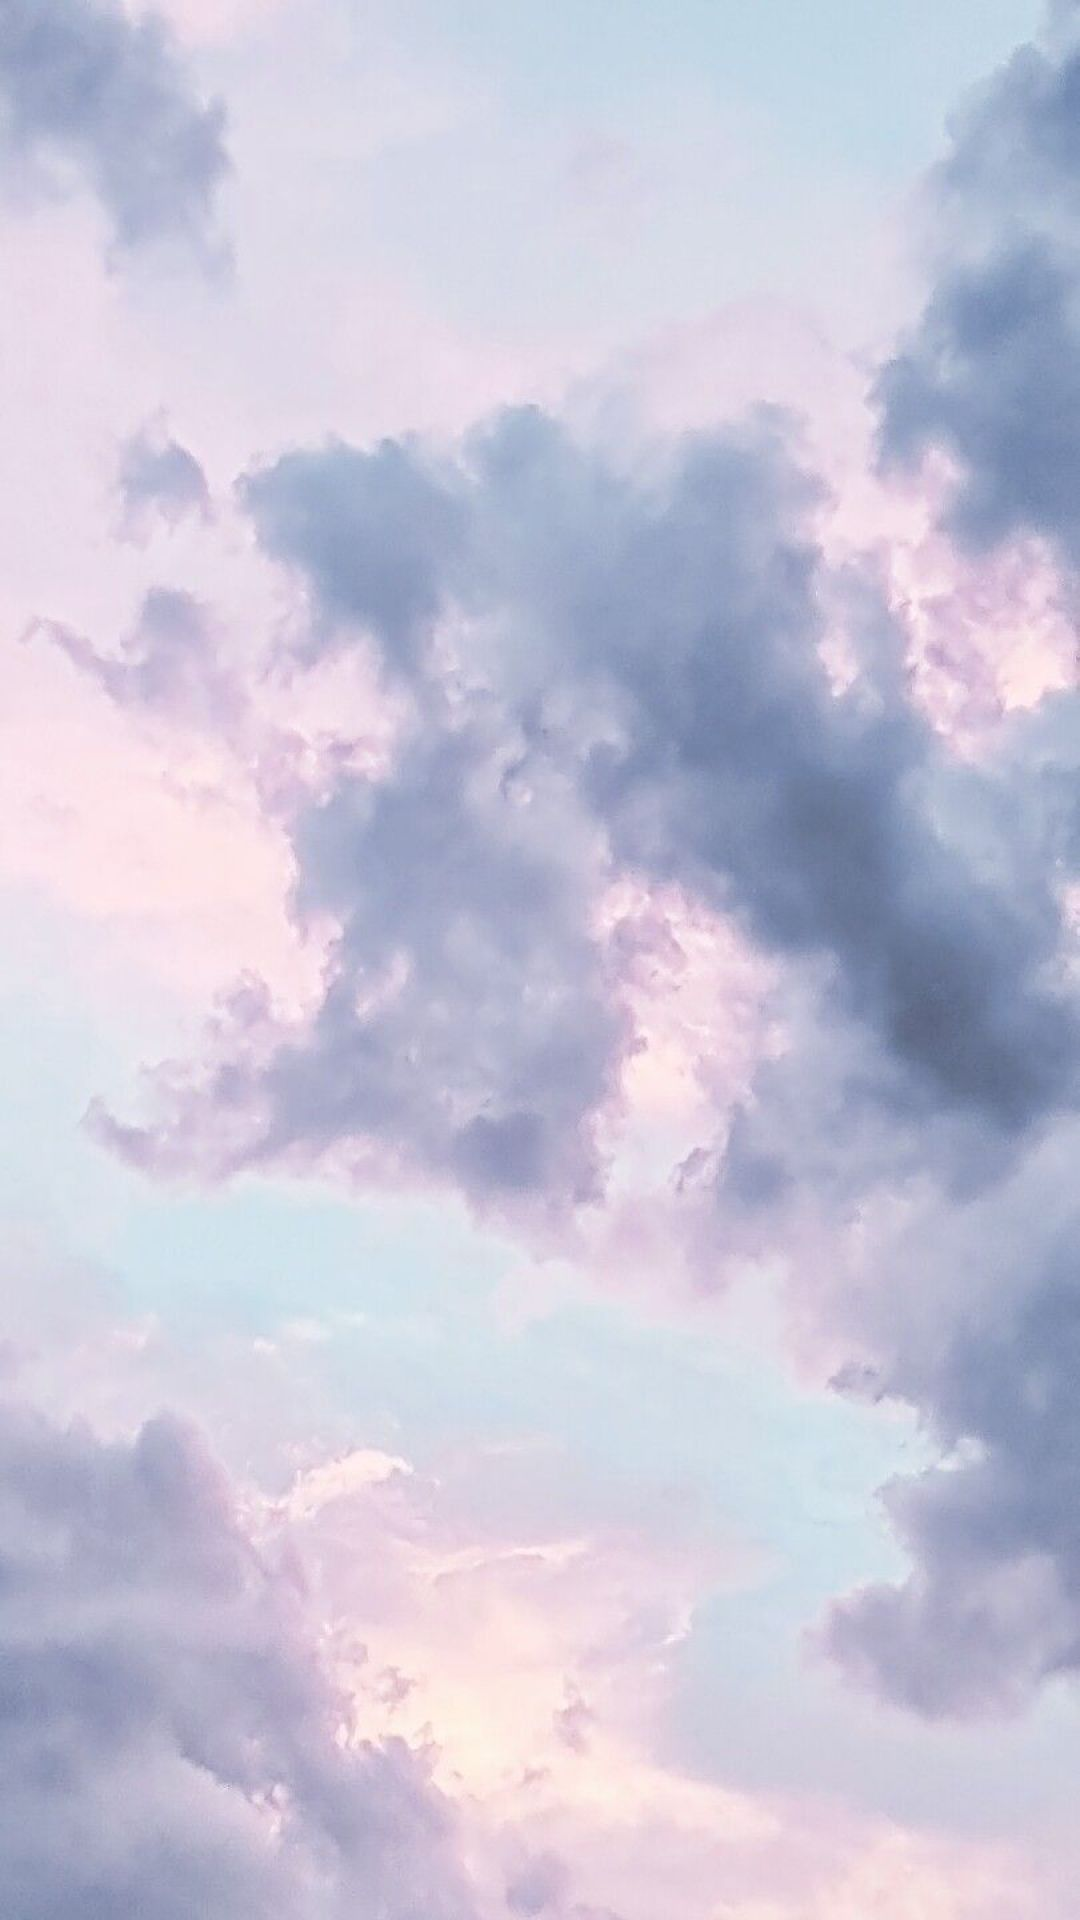 Clouds Aesthetic Android Iphone Desktop Hd Backgrounds Wallpapers 1080p 4k 102727 Preppy Wallpaper Pastel Iphone Wallpaper Aesthetic Iphone Wallpaper